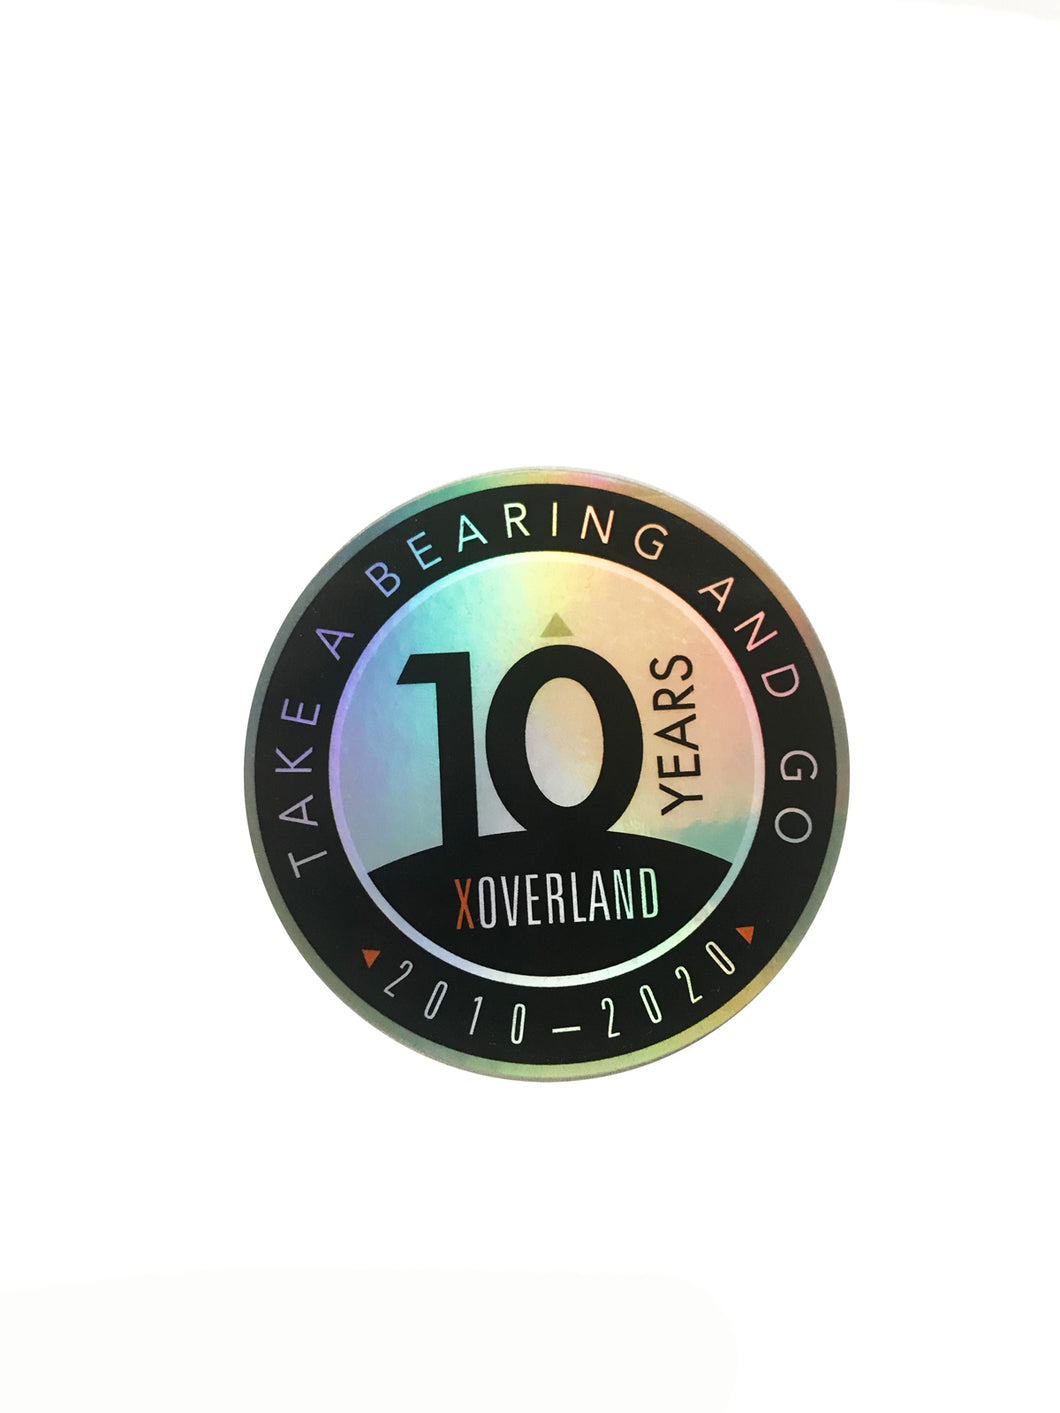 X Overland™ 10 Year Holographic Decal